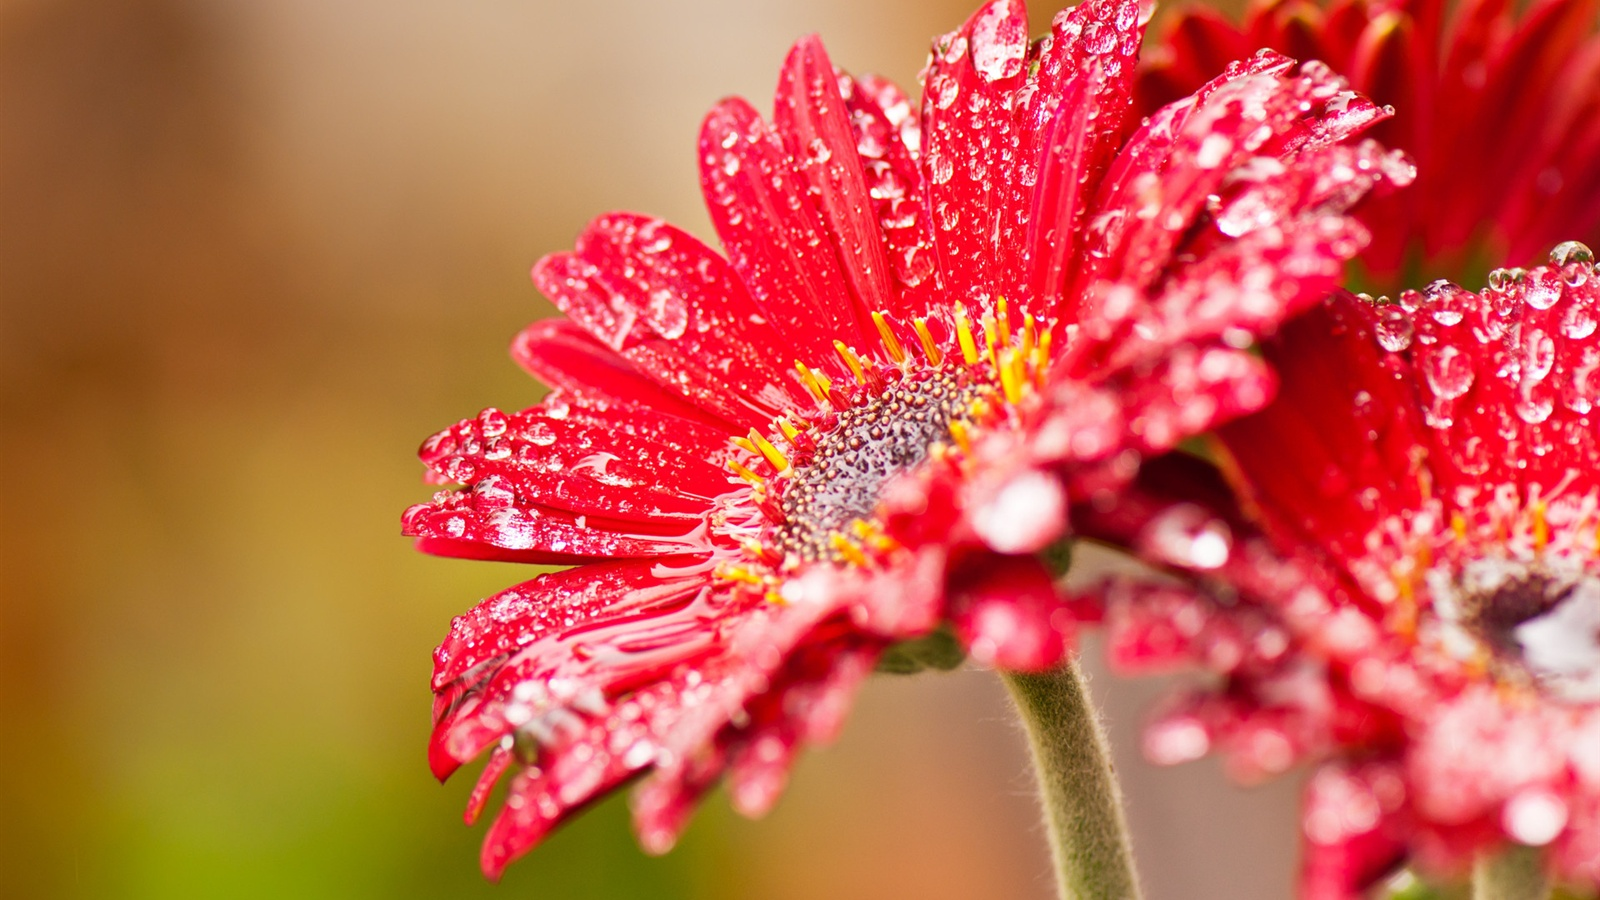 http://ru.best-wallpaper.net/wallpaper/1600x900/1203/Red-gerbera-flowers-after-rain_1600x900.jpg